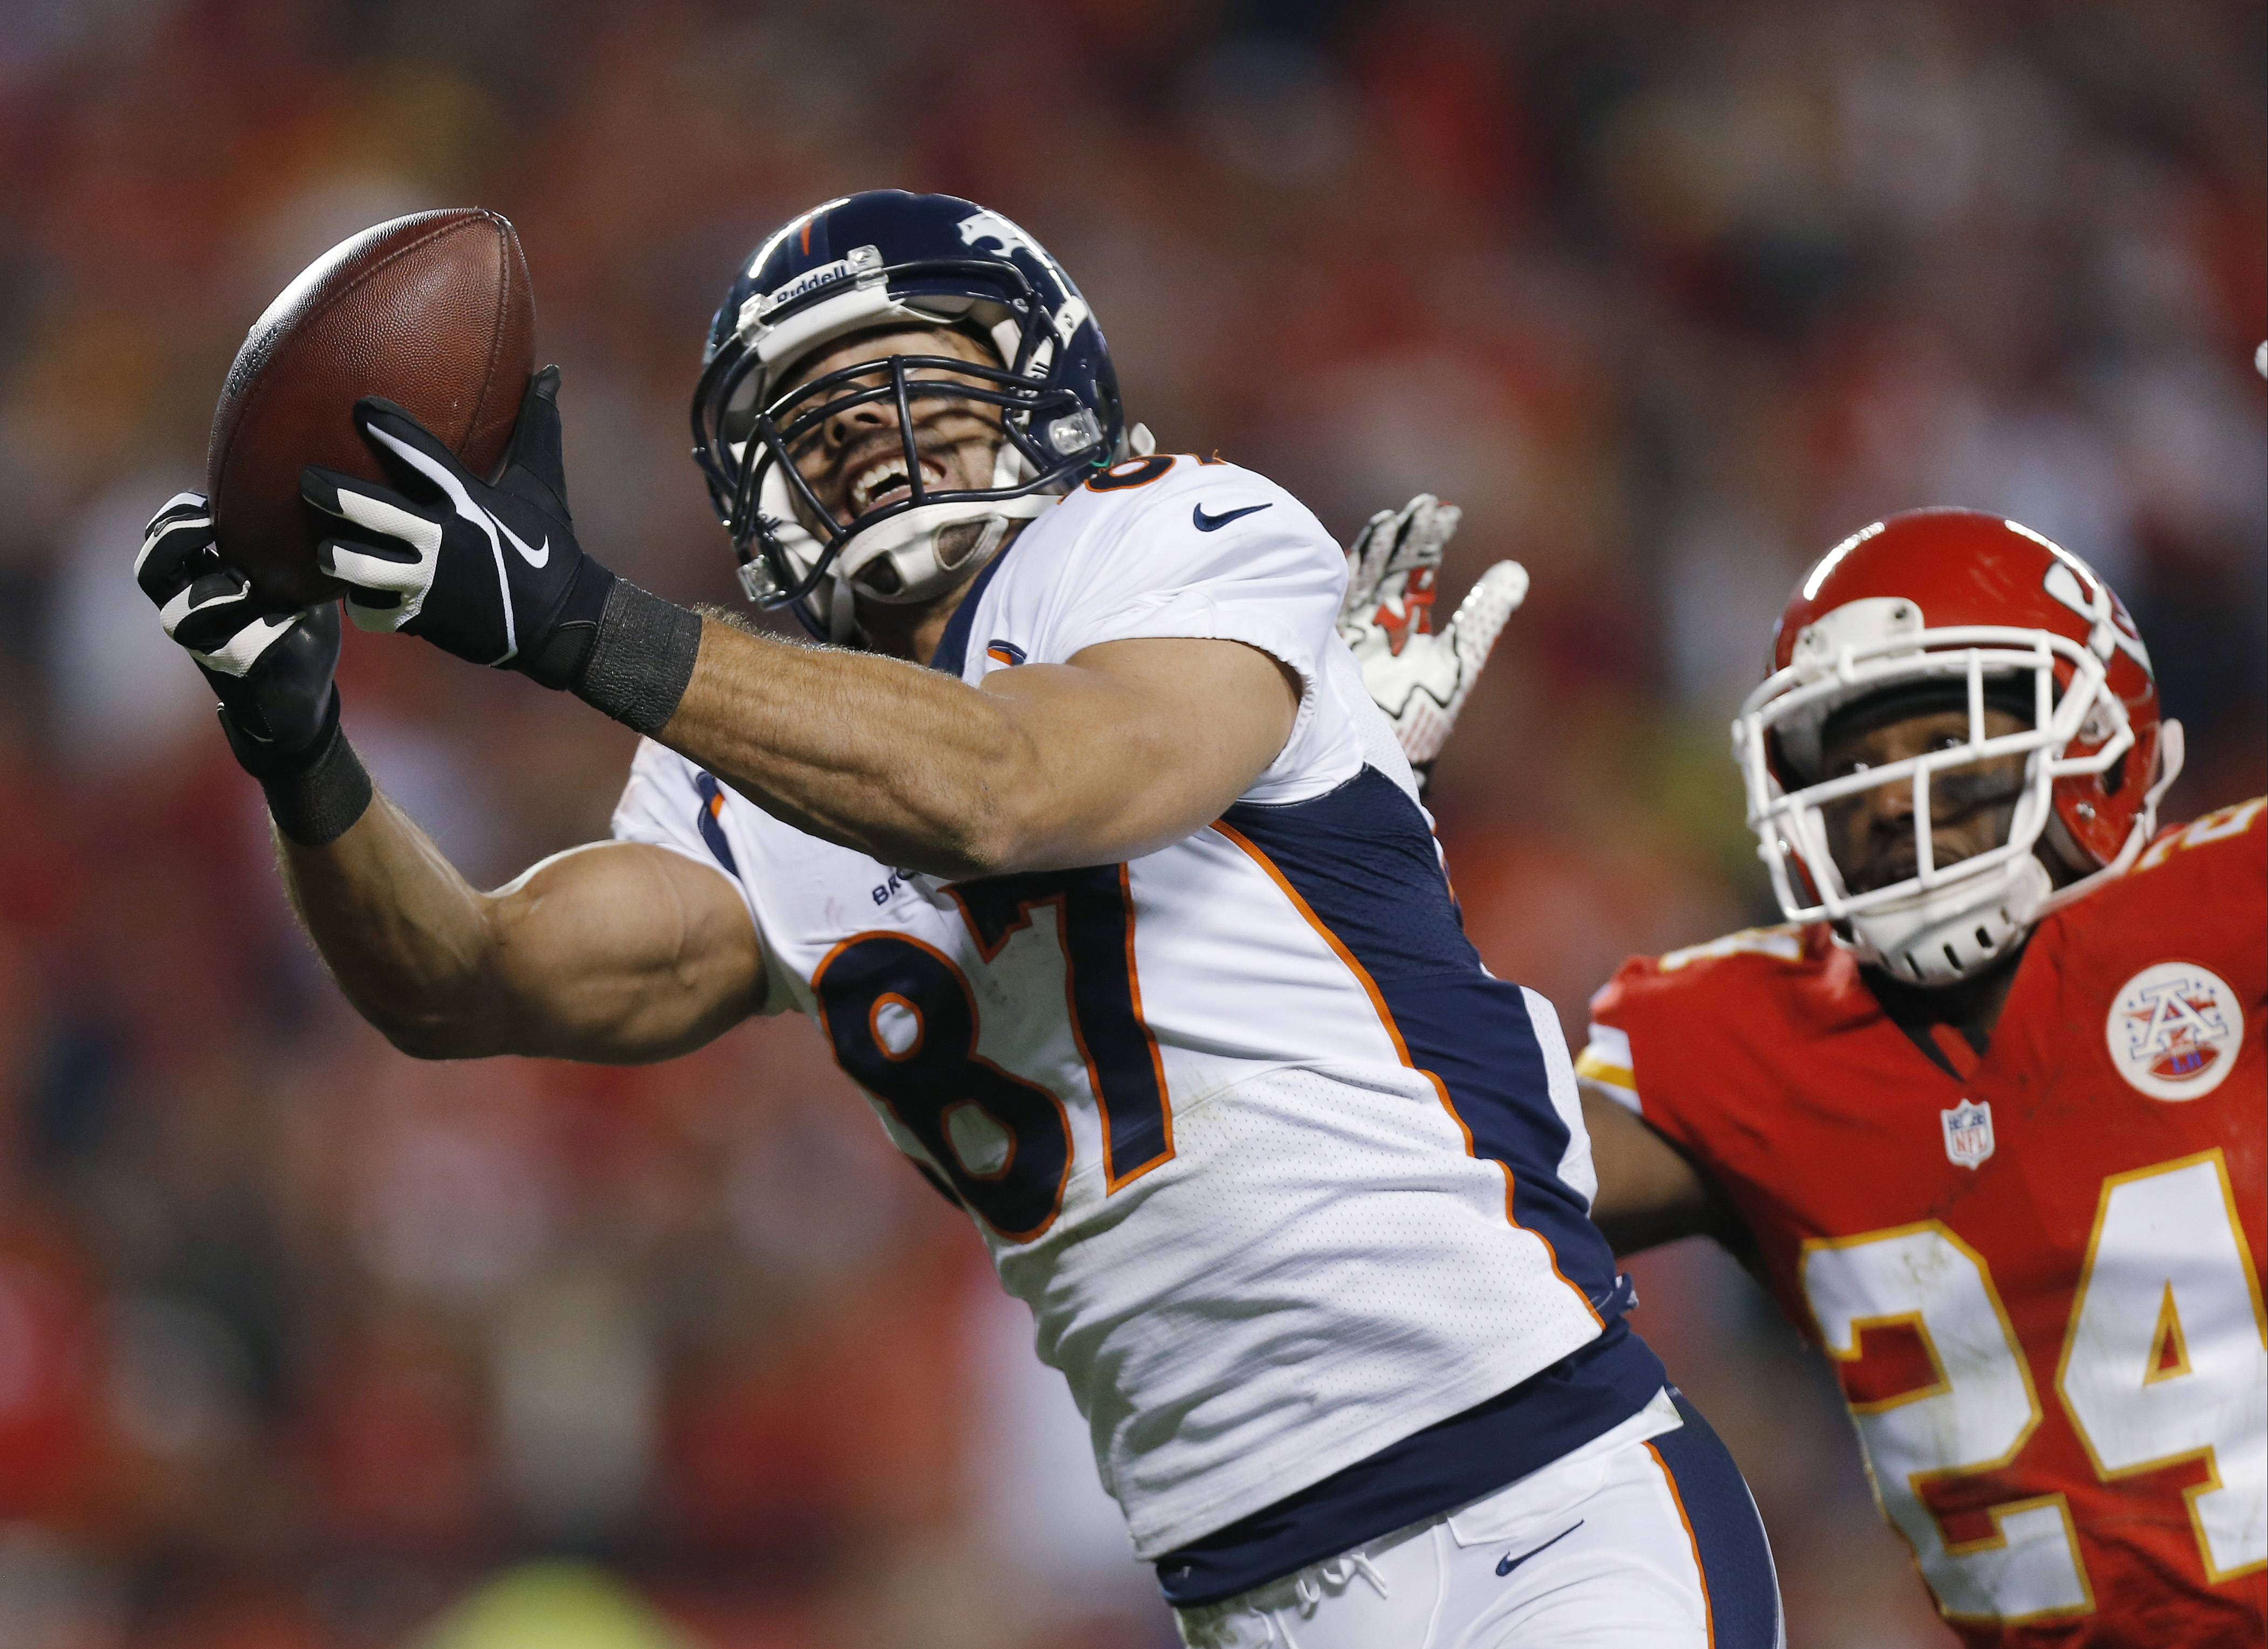 Denver Broncos wide receiver Eric Decker makes a touchdown catch against Kansas City Chiefs cornerback Brandon Flowers during the Dec. 1 game in Kansas City, Mo. Decker set career highs with 87 catches and 1,288 yards receiving to go along with 11 touchdowns last season.